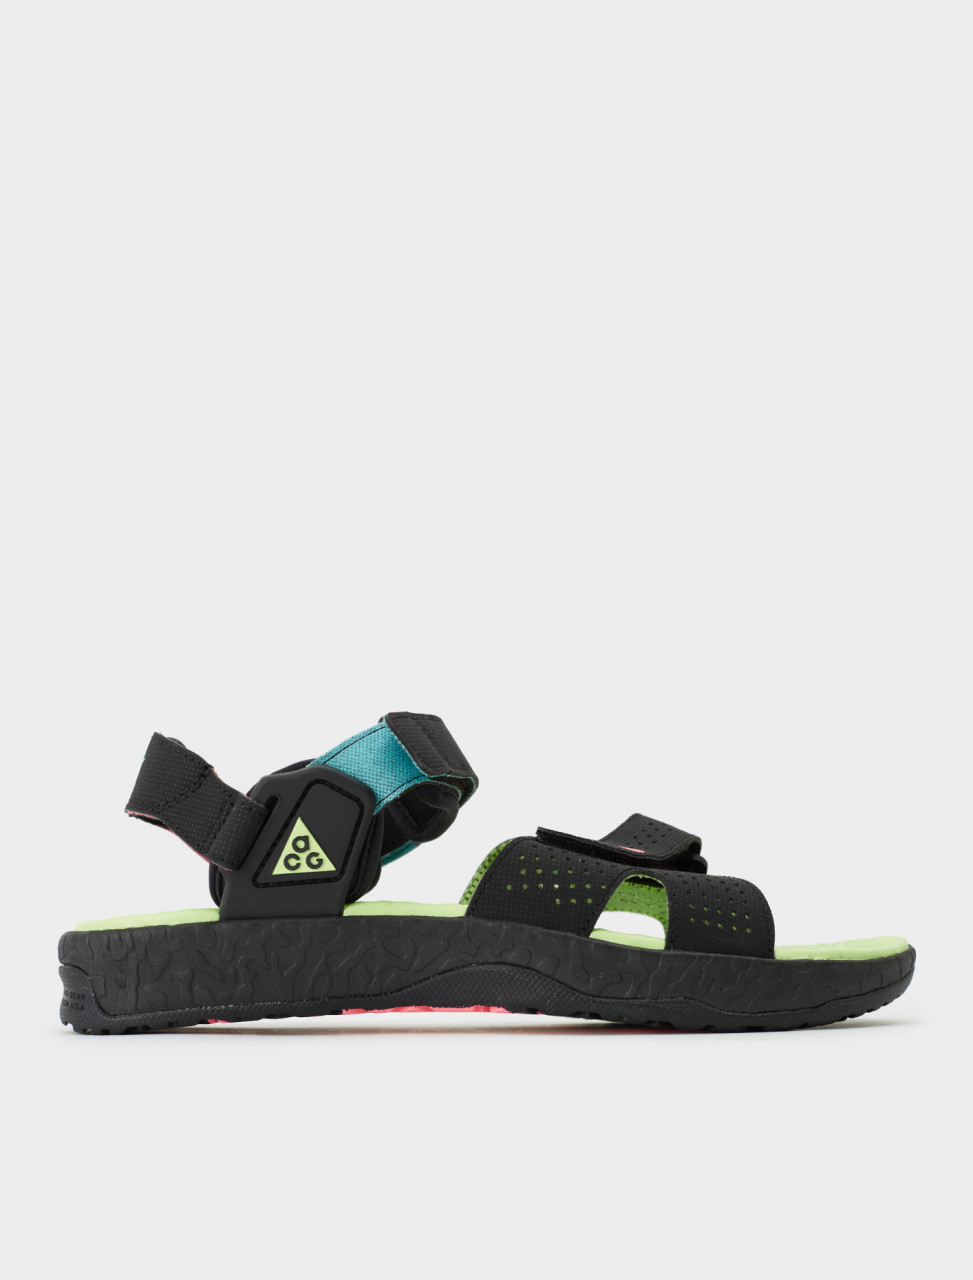 Nike ACG Deschutz Sandal in Digital Pink & Ghost Green Side